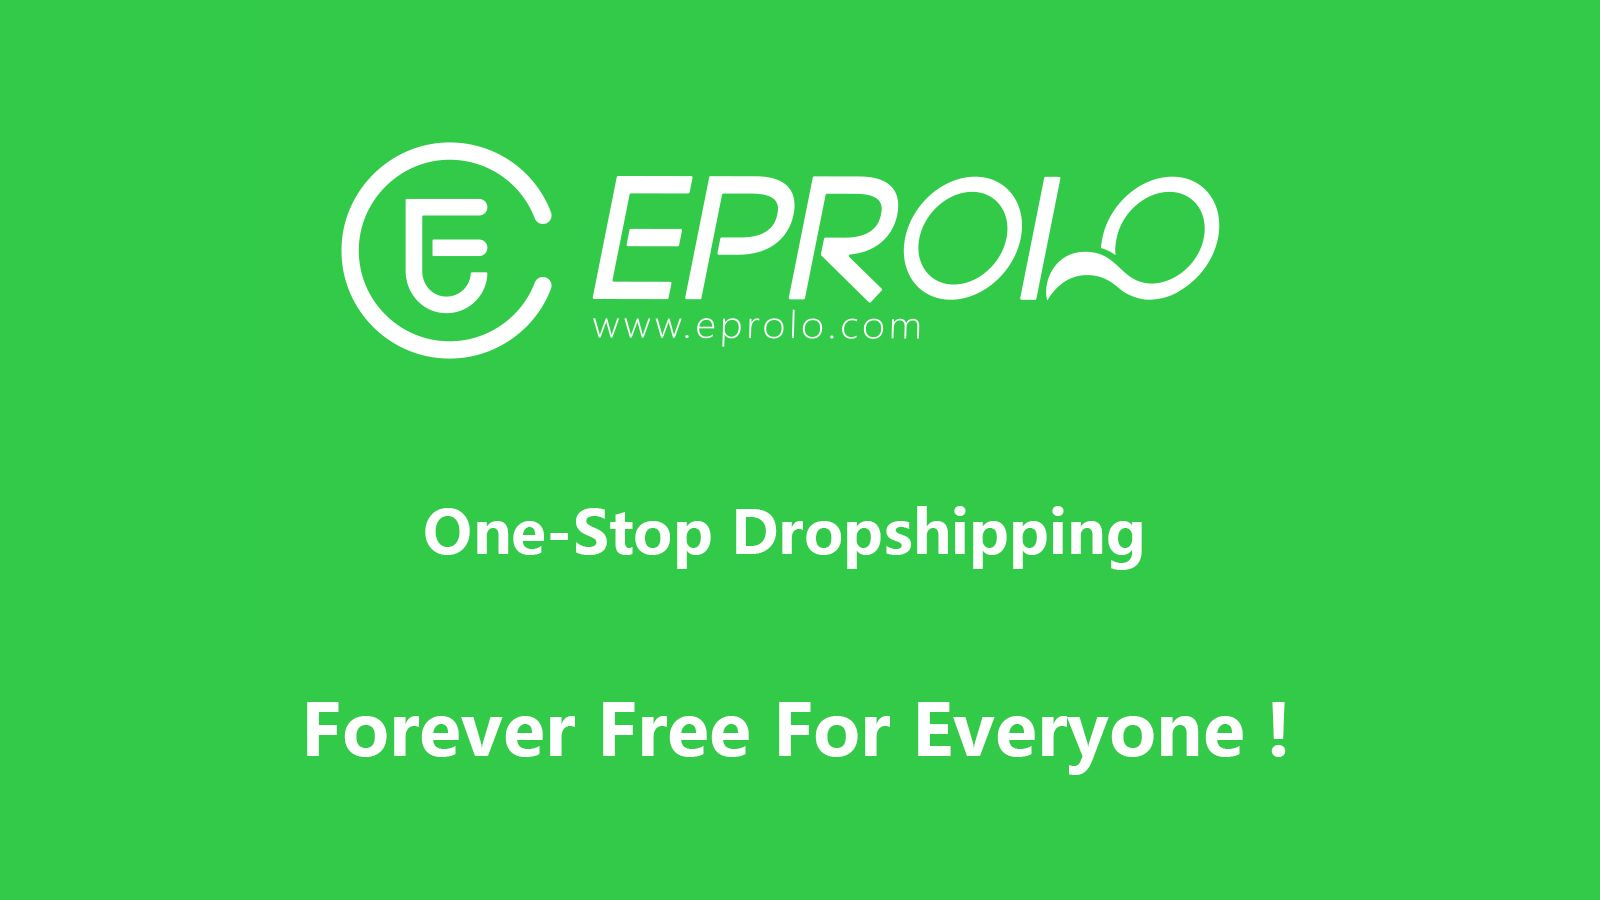 We are product sourcing and dropshipping experts in China